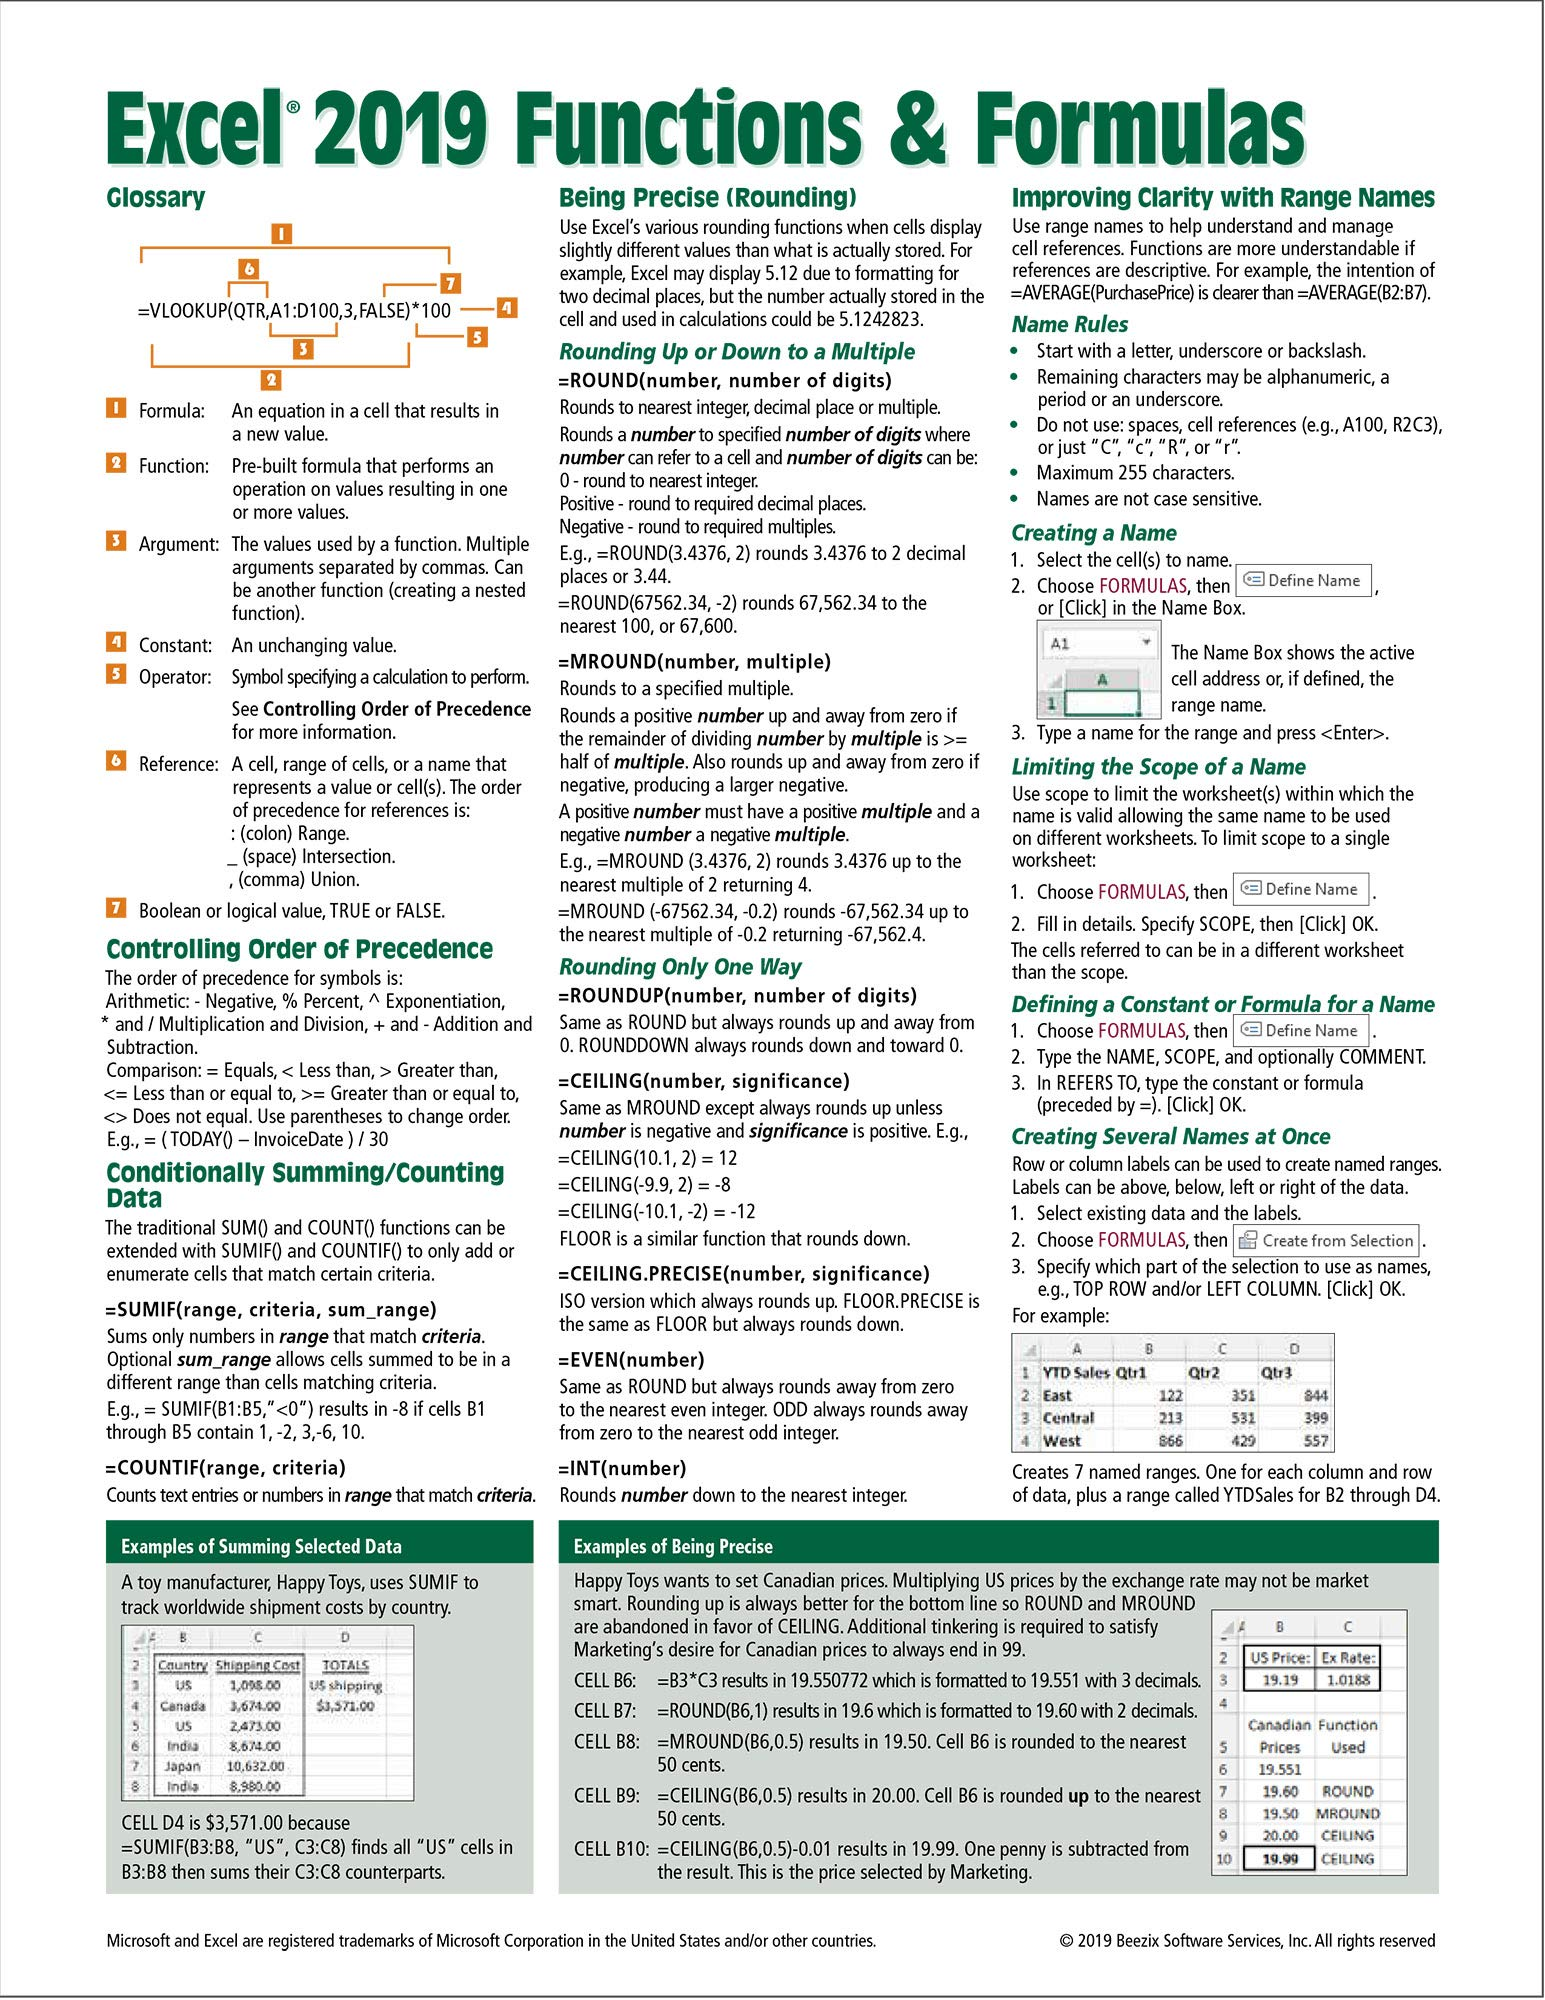 Amazon.com Beezix Quick Reference Guides All Excel Guides